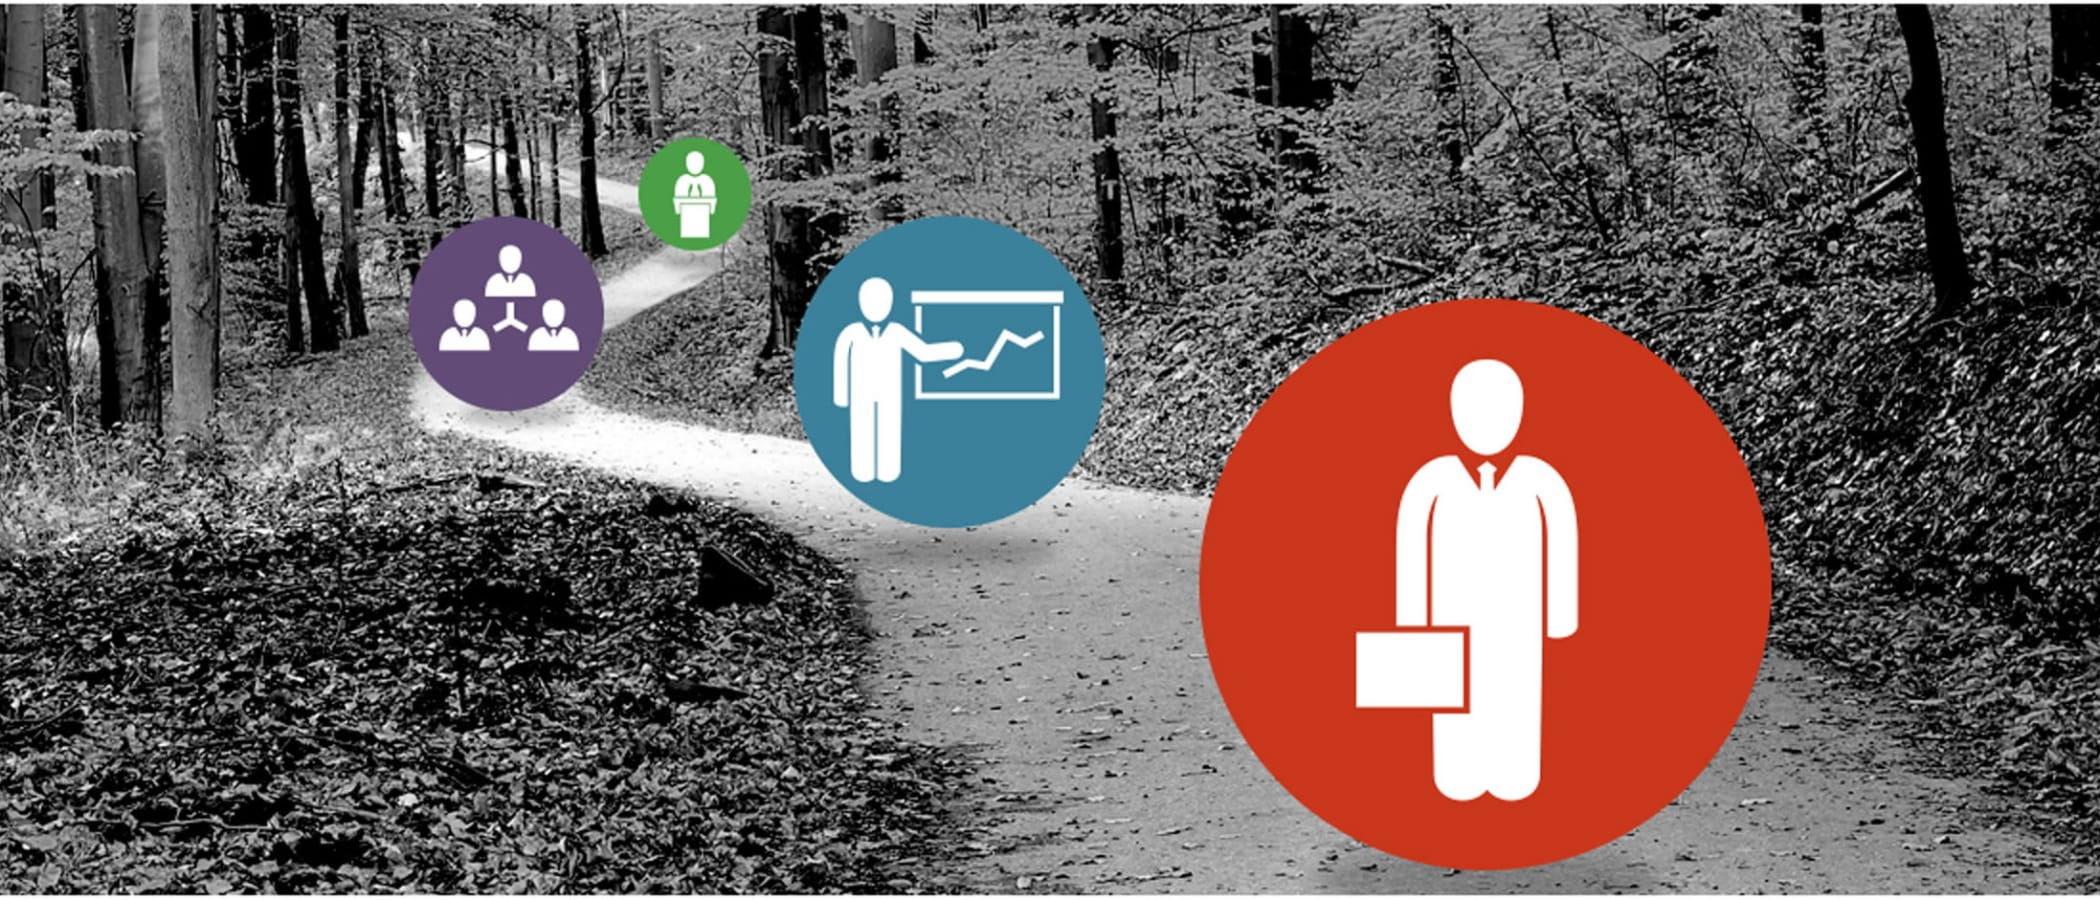 The Road to HR Career Success